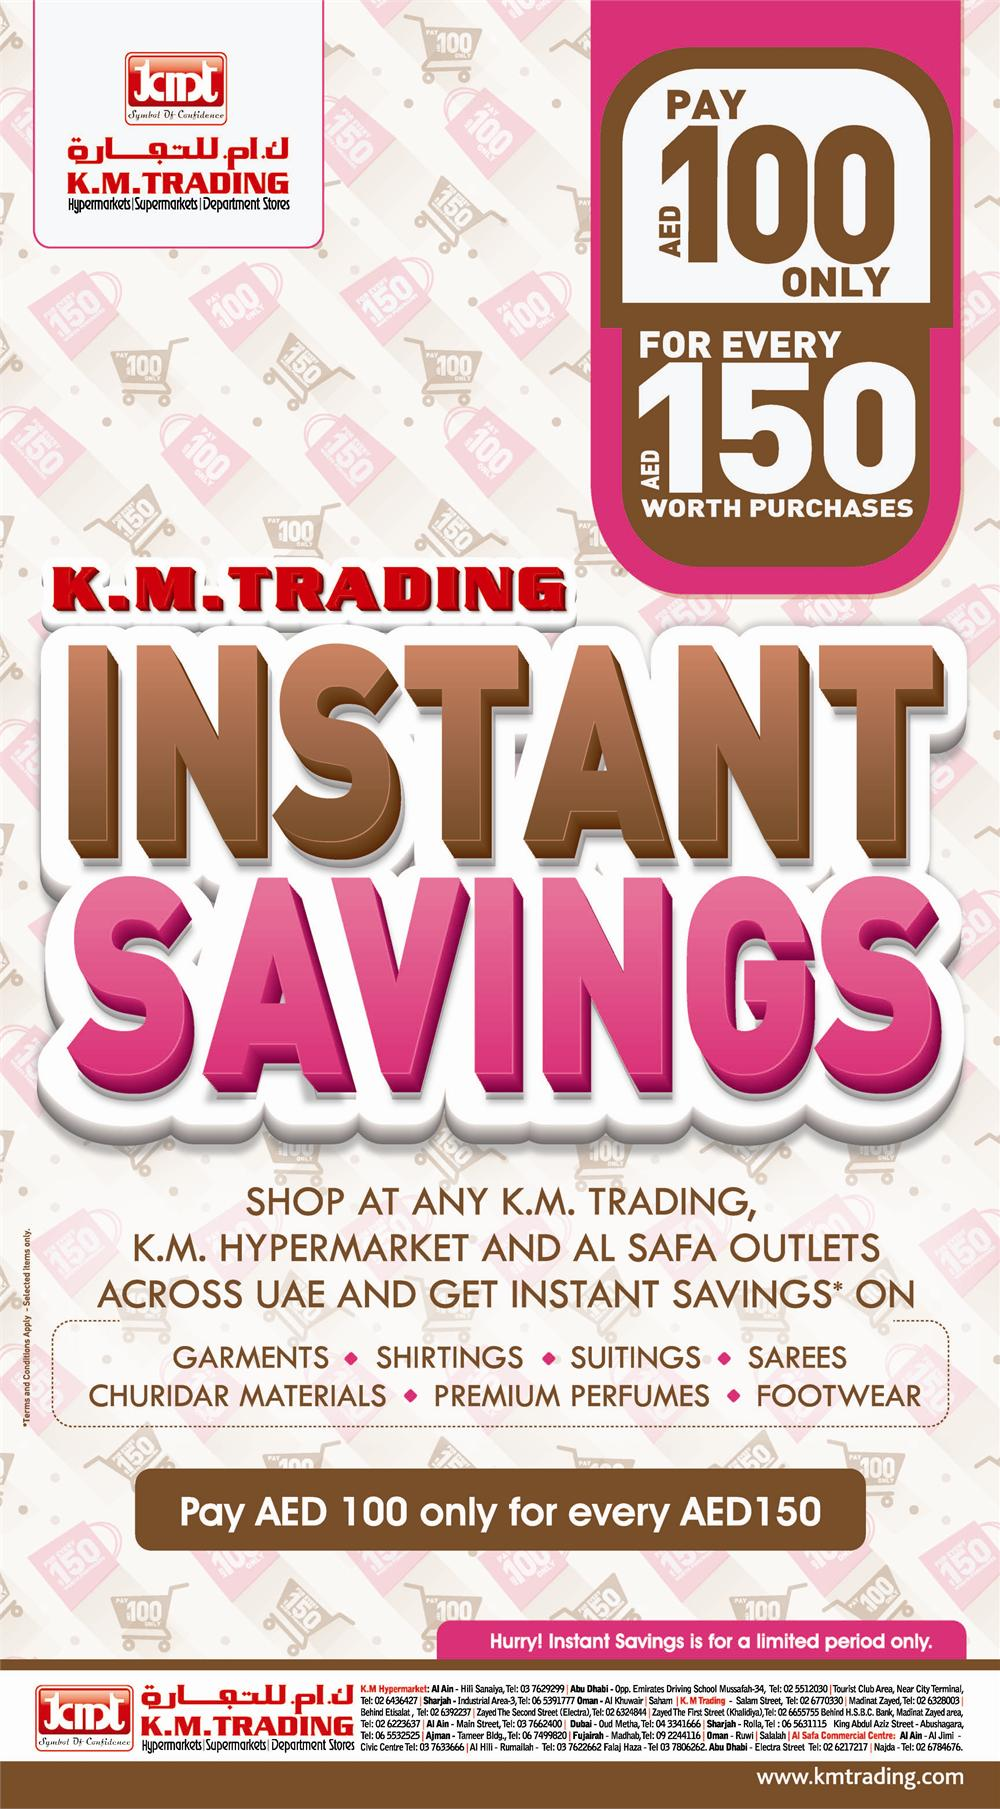 March April 2018 Subscriptions: KM Trading Company